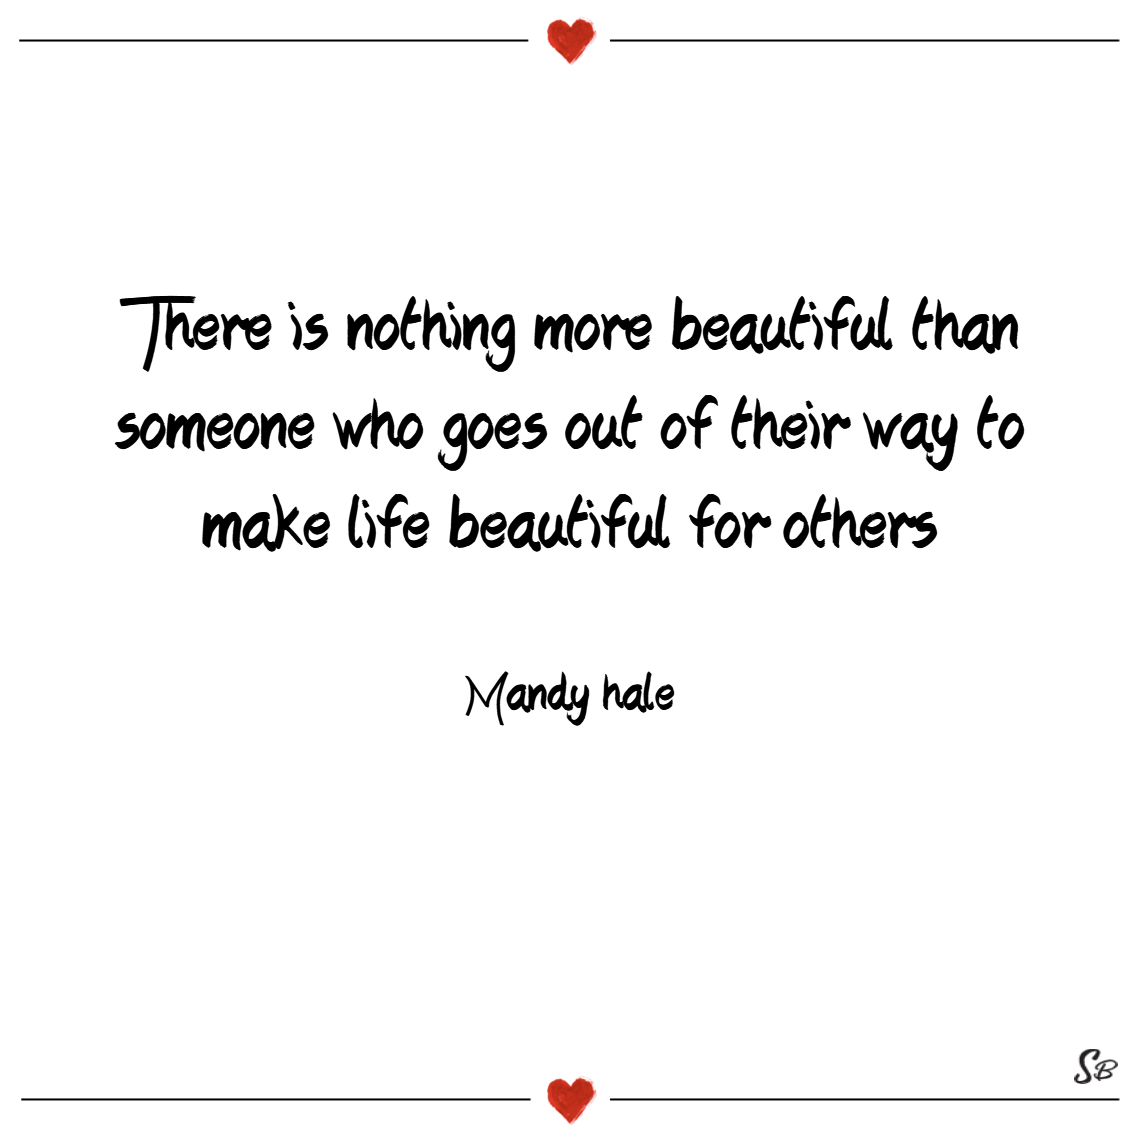 There is nothing more beautiful than someone who goes out of their way to make life beautiful for others. – mandy hale